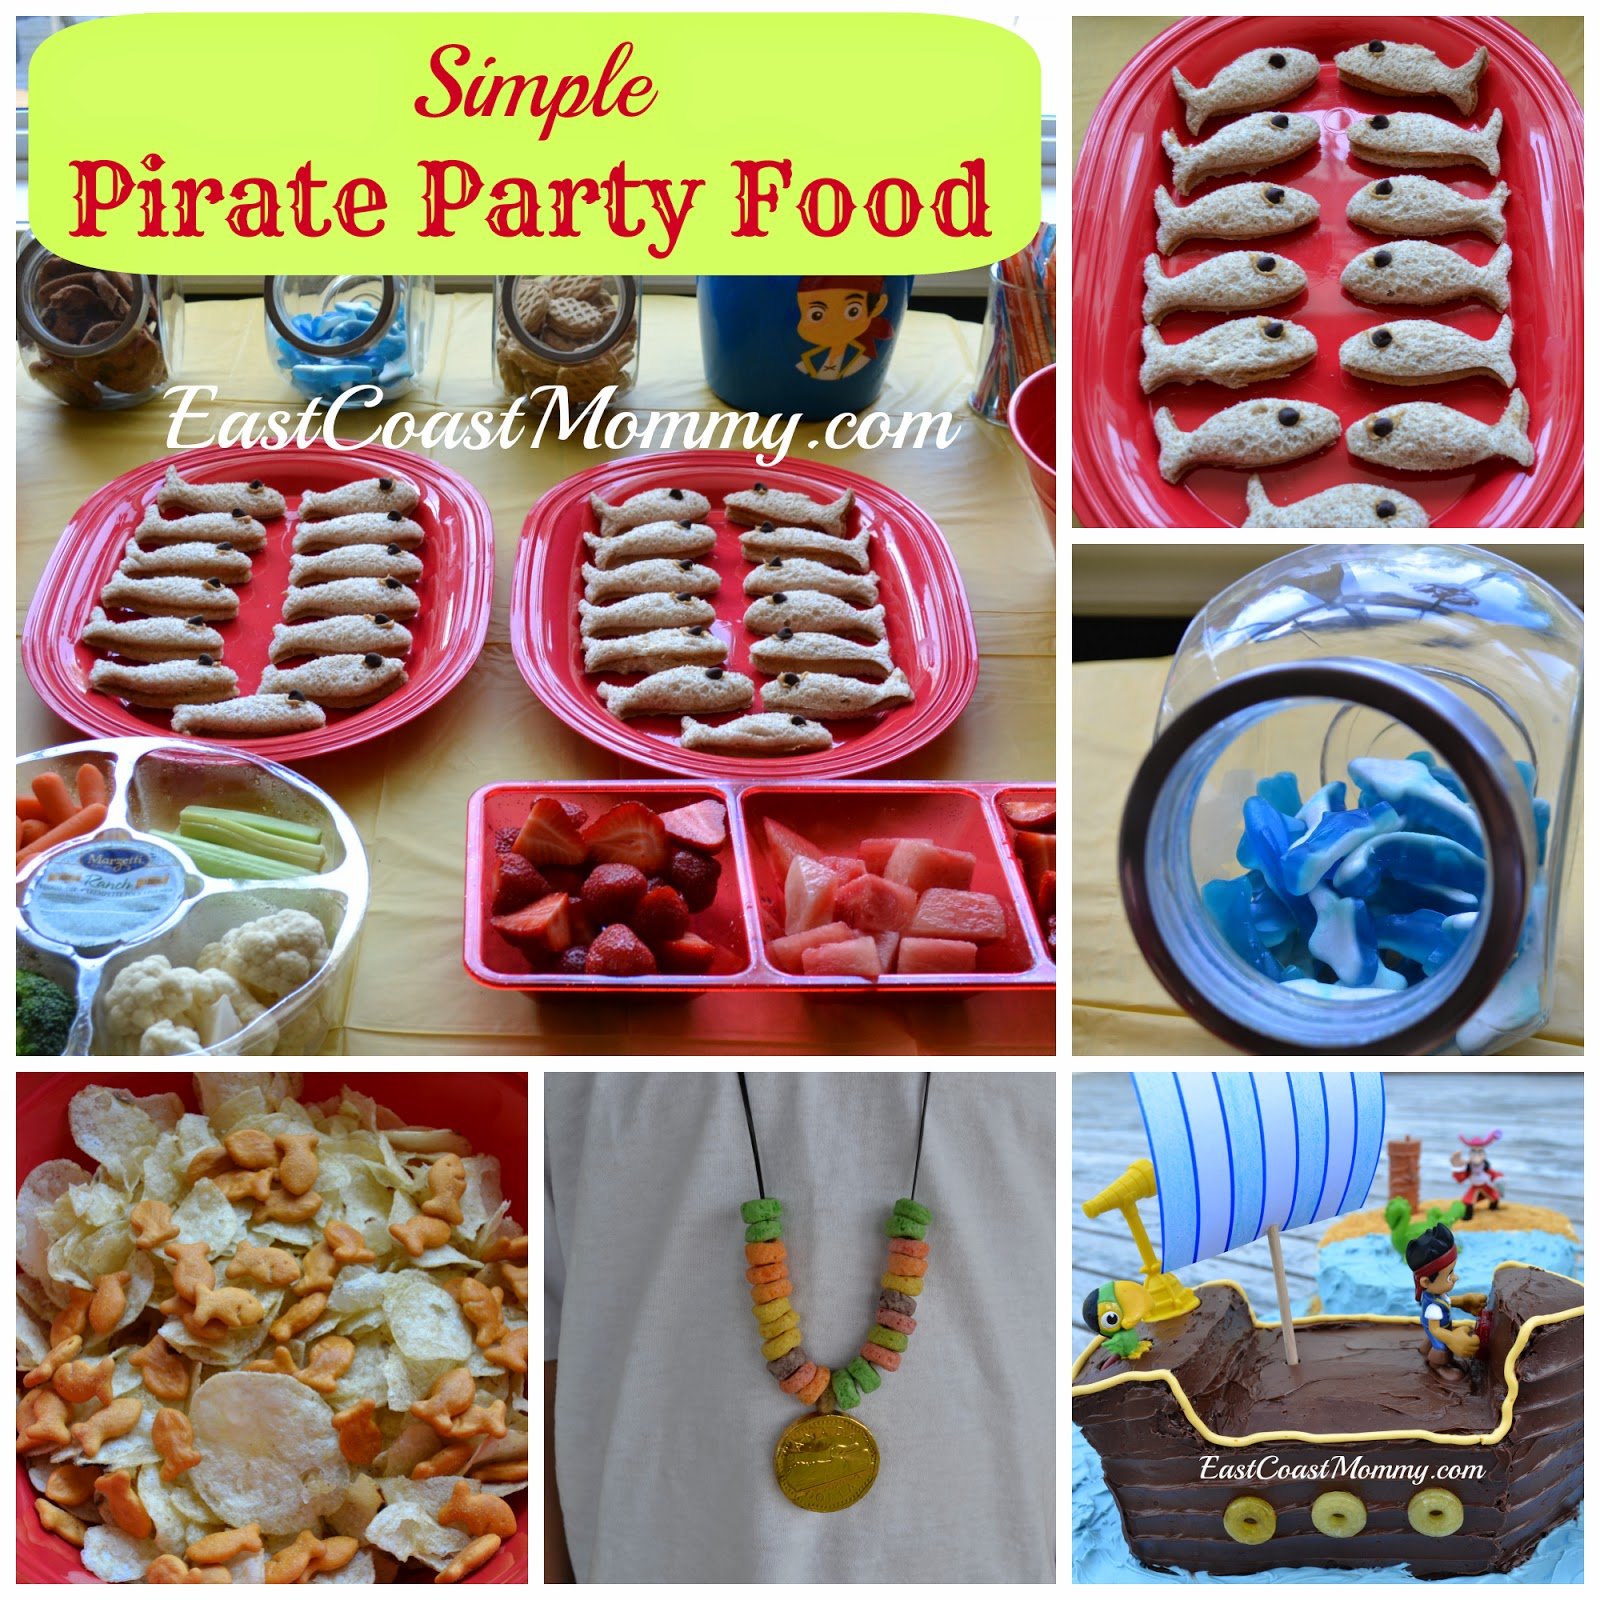 Recently I Had A Jake And The Neverland Pirates Party For My Youngest Son Although Kept It Simple Think Pirate Themed Food Was Adorable